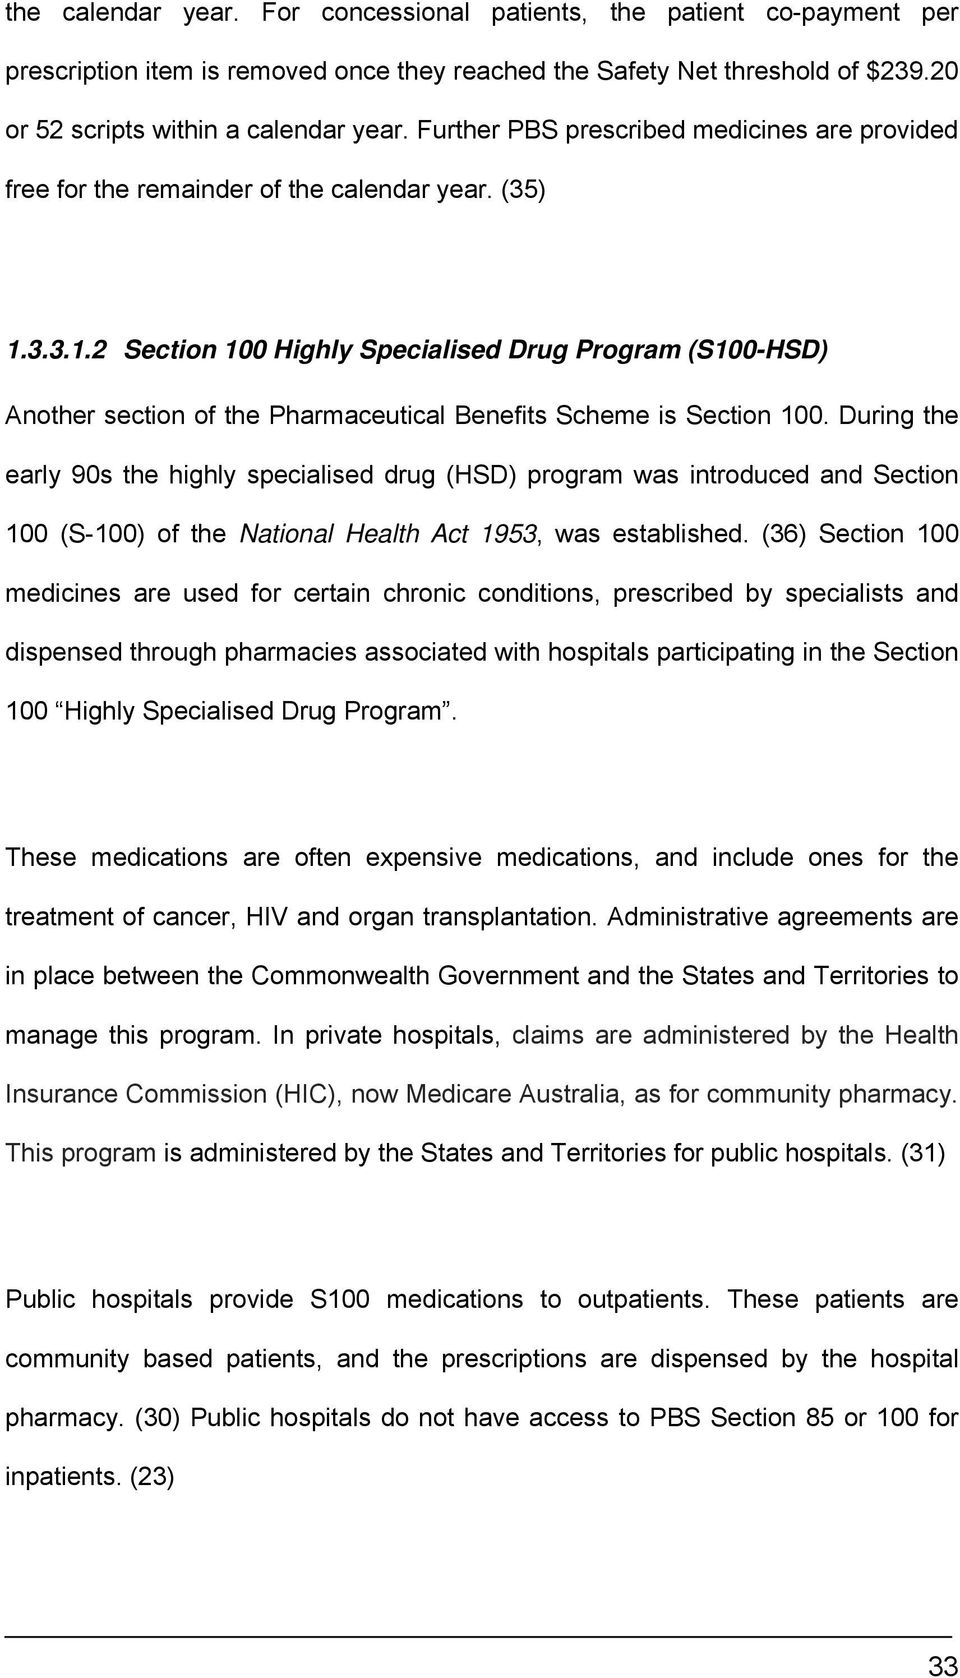 3.3.1.2 Section 100 Highly Specialised Drug Program (S100-HSD) Another section of the Pharmaceutical Benefits Scheme is Section 100.